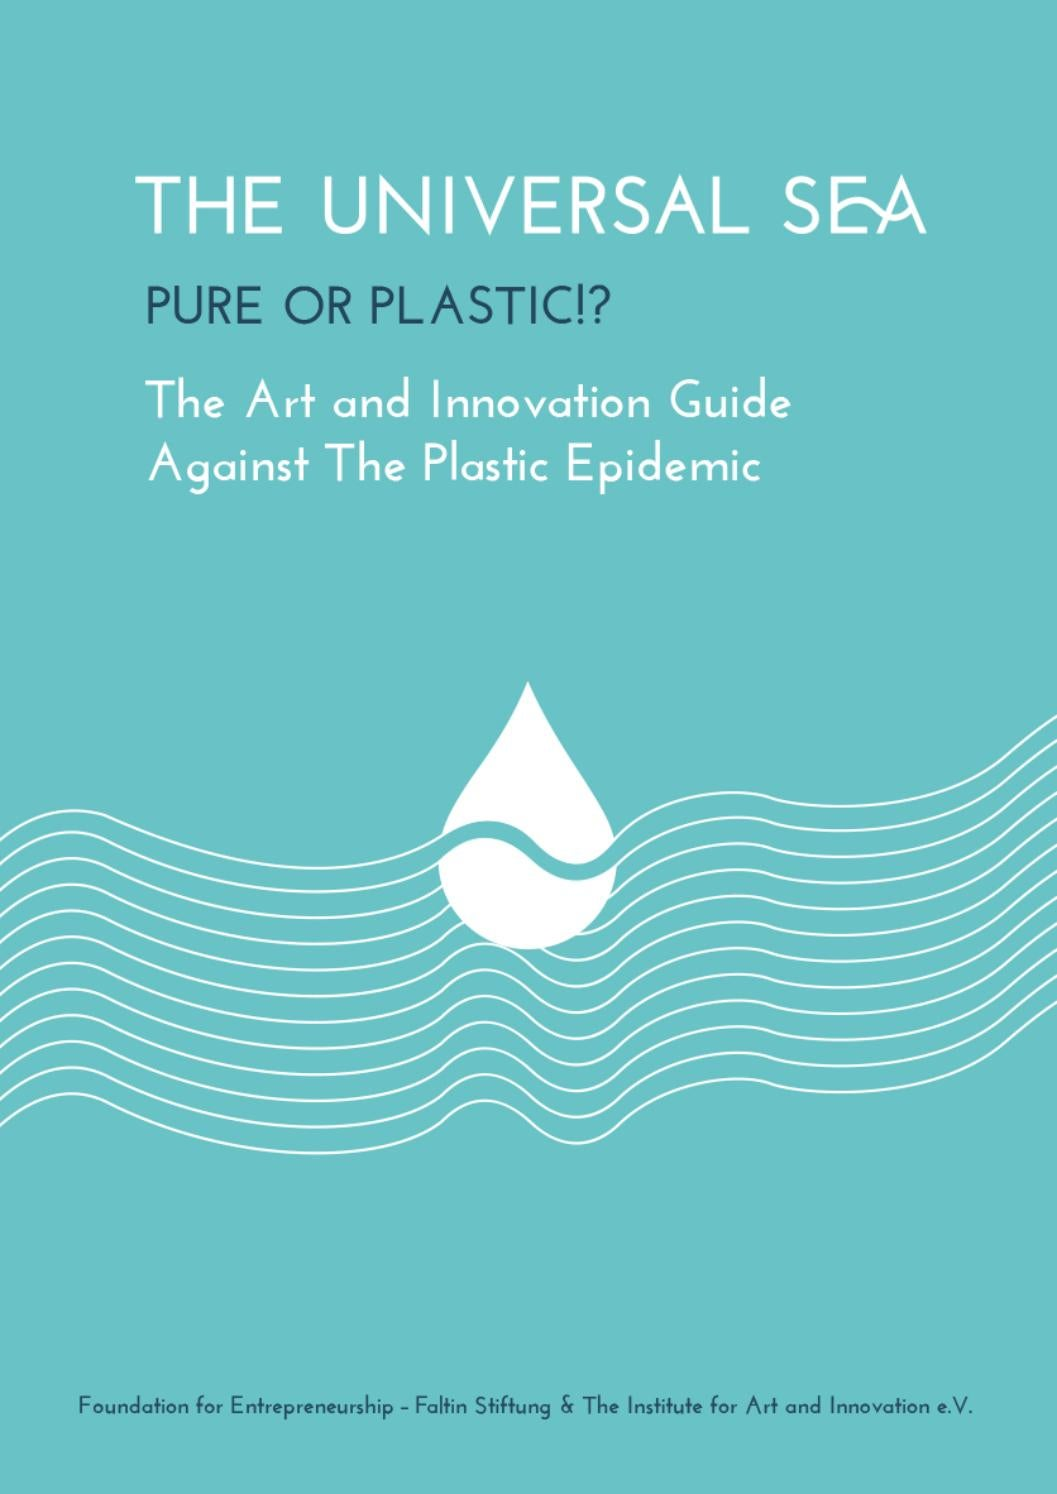 The Universal Sea The Art And Innovation Guide Against The Plastic Epidemic By The Universal Sea Issuu